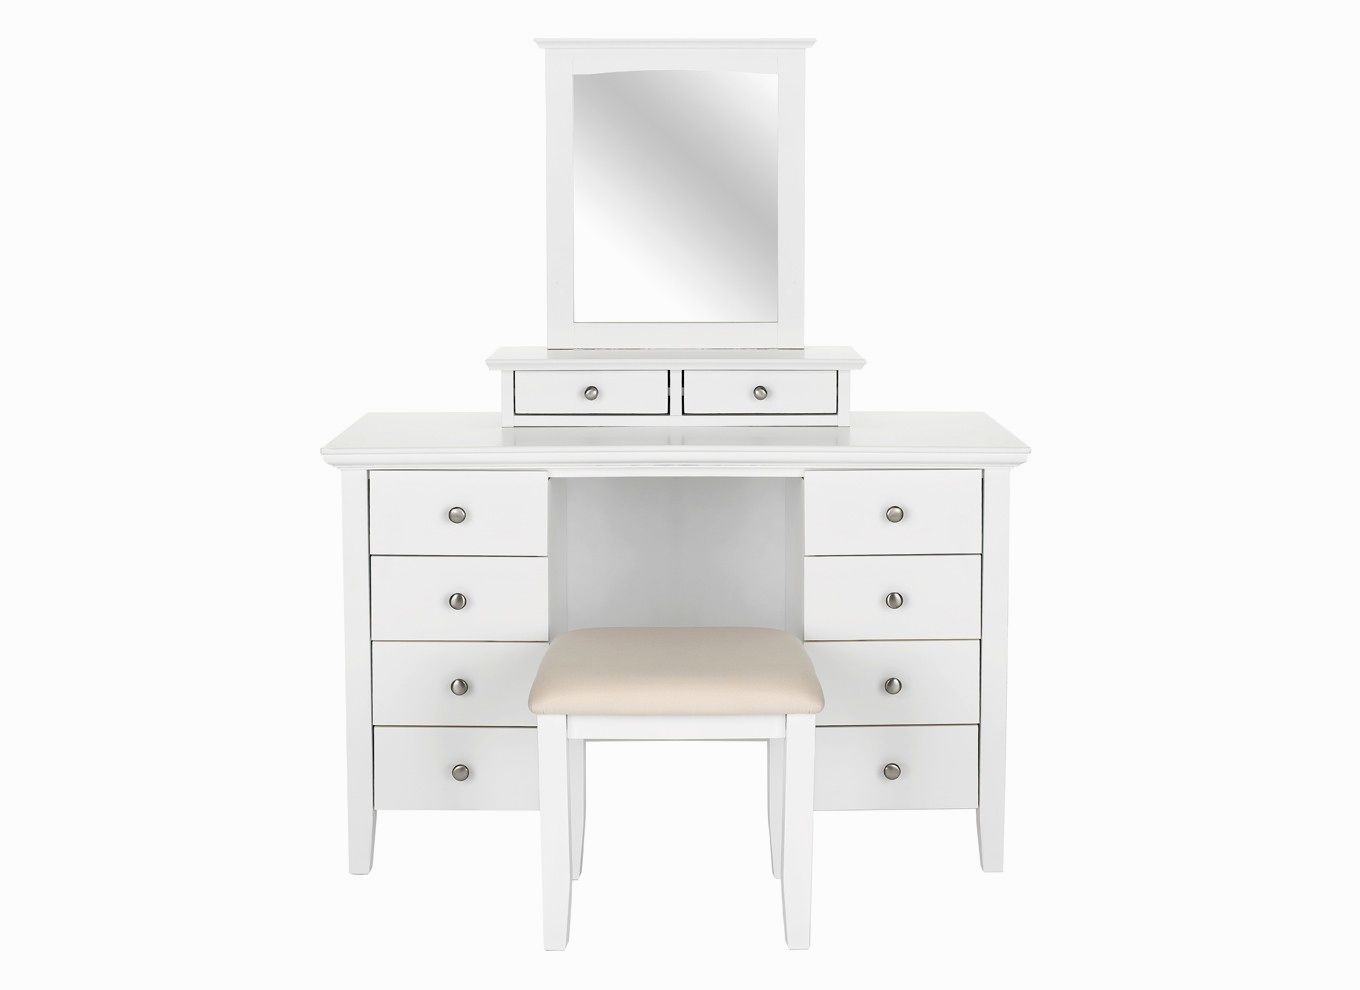 fancy bathroom makeup vanity concept-Cute Bathroom Makeup Vanity Photograph